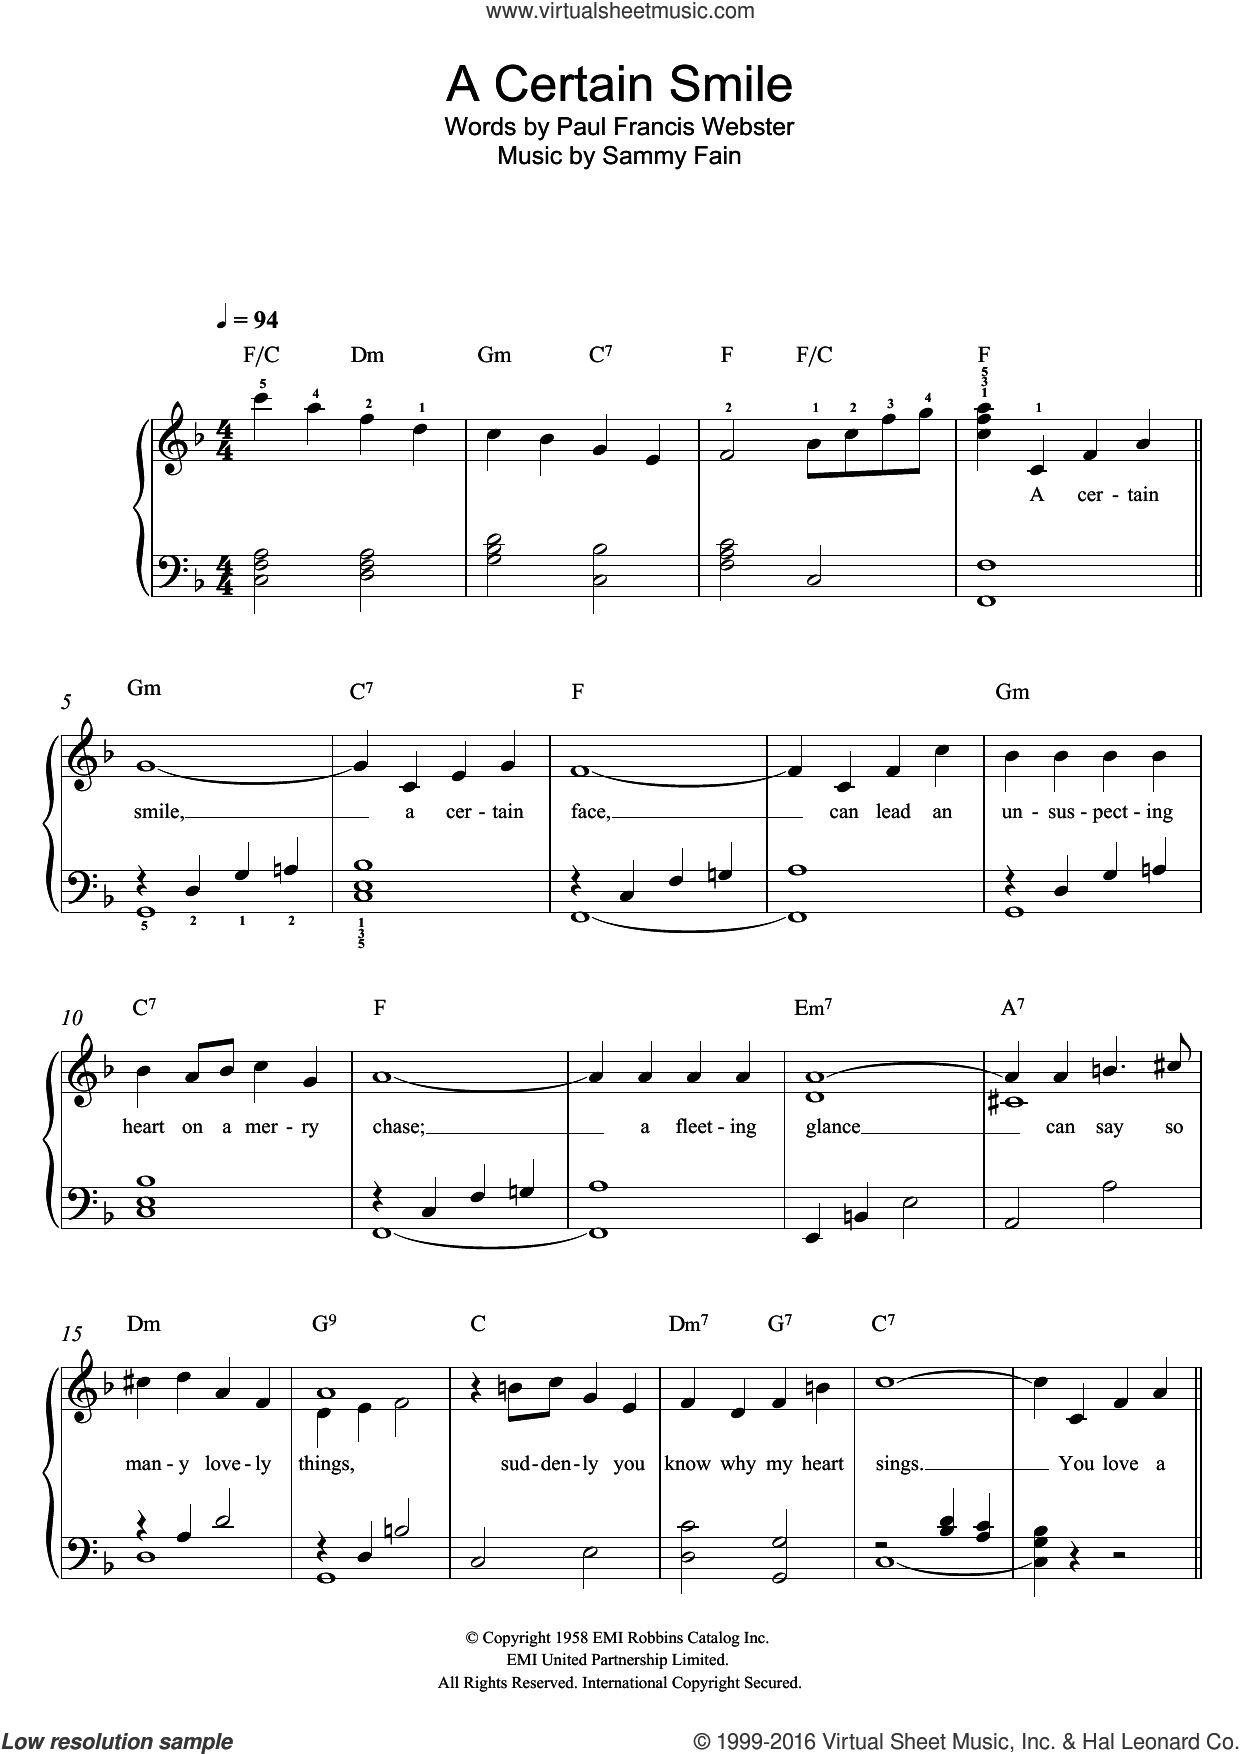 A Certain Smile sheet music for piano solo by Johnny Mathis, Sammy Fain and Paul Francis Webster, easy skill level